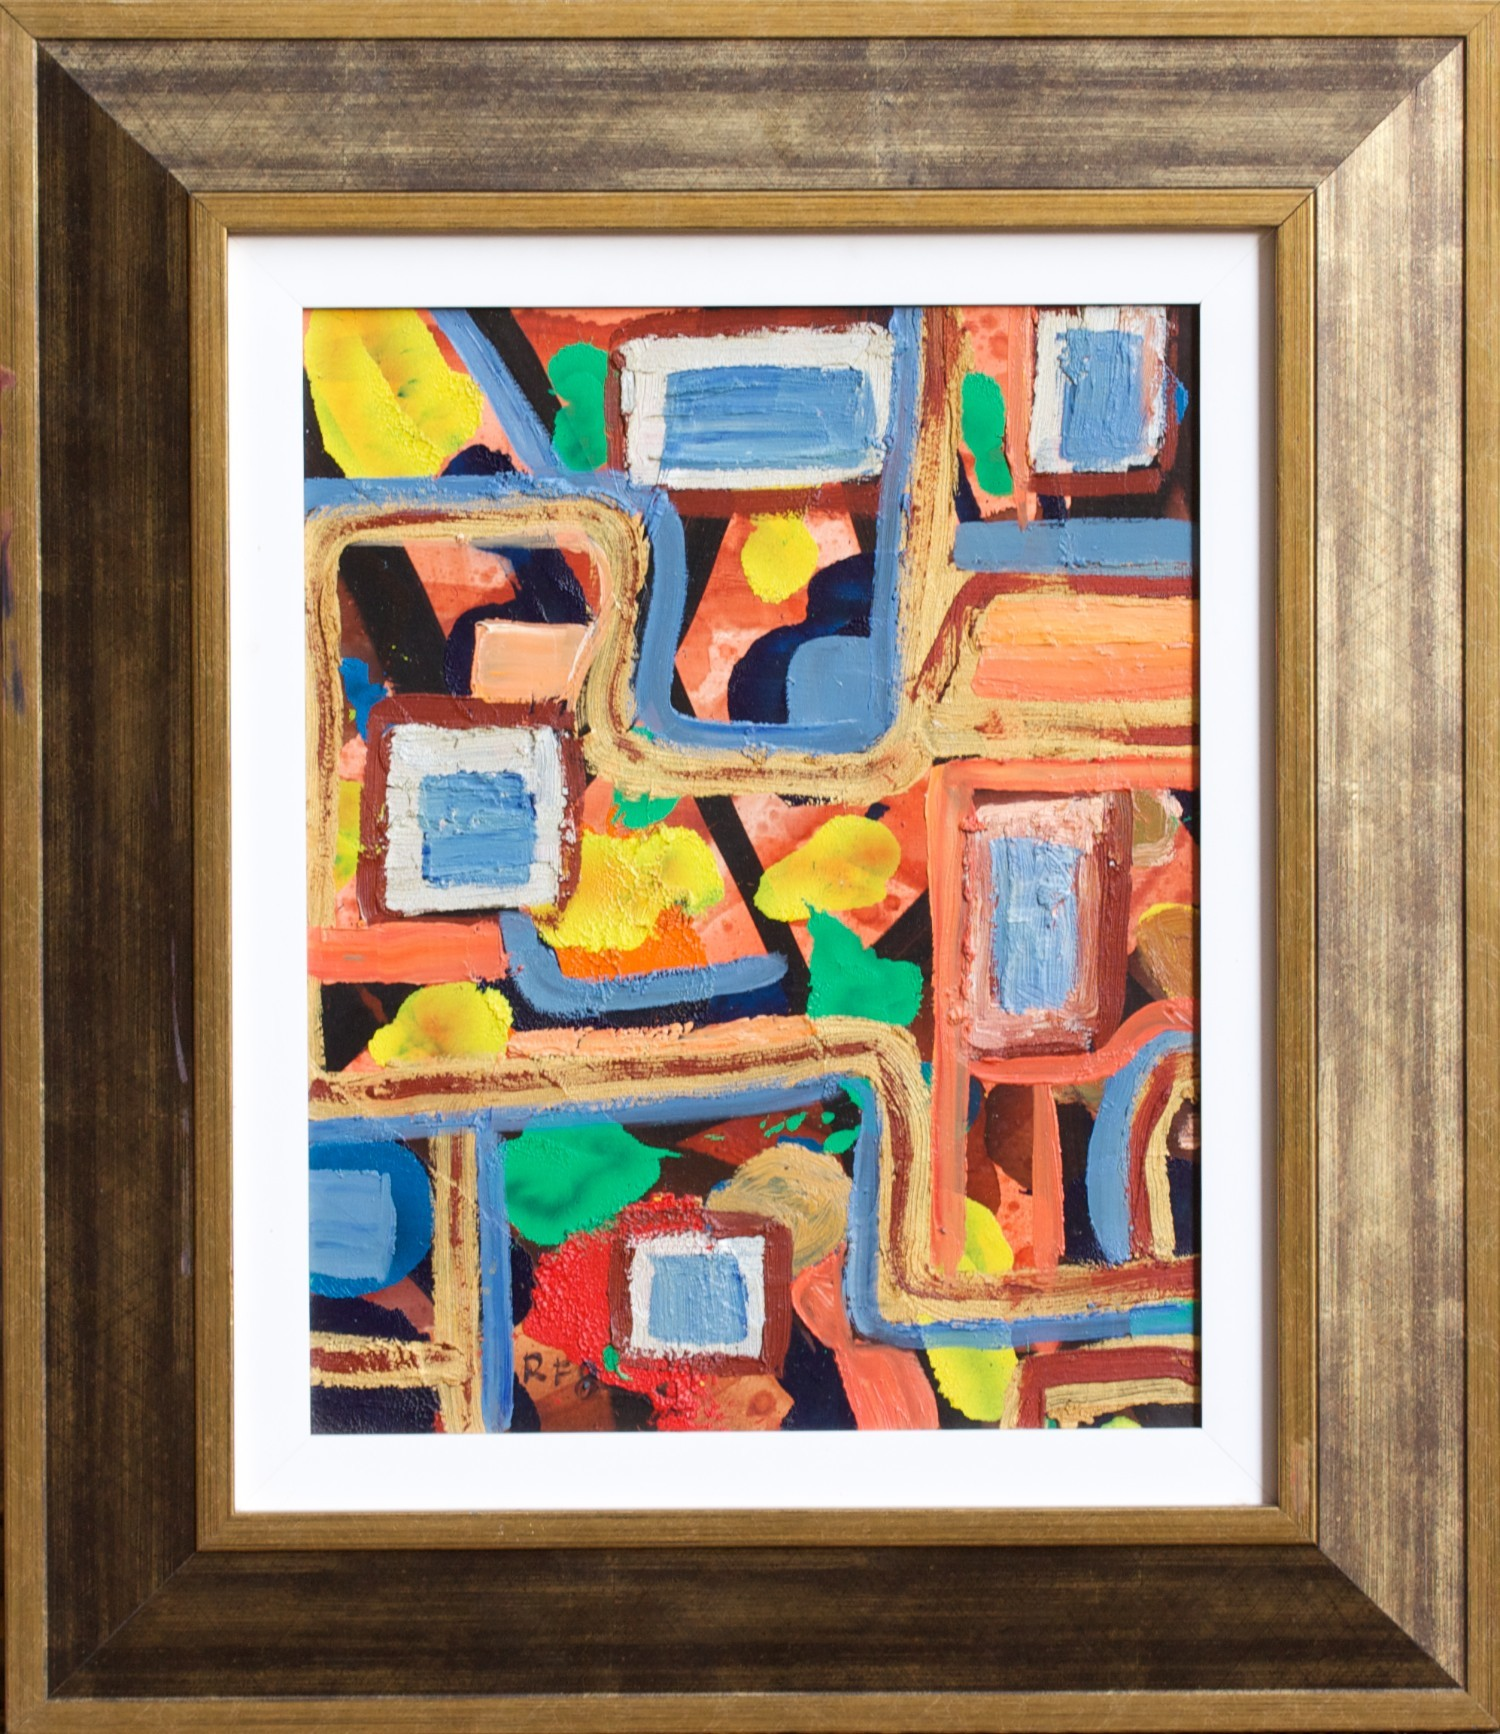 #8303 Robert Fisher 'Abstract I' Oil on board was $880 Now $616